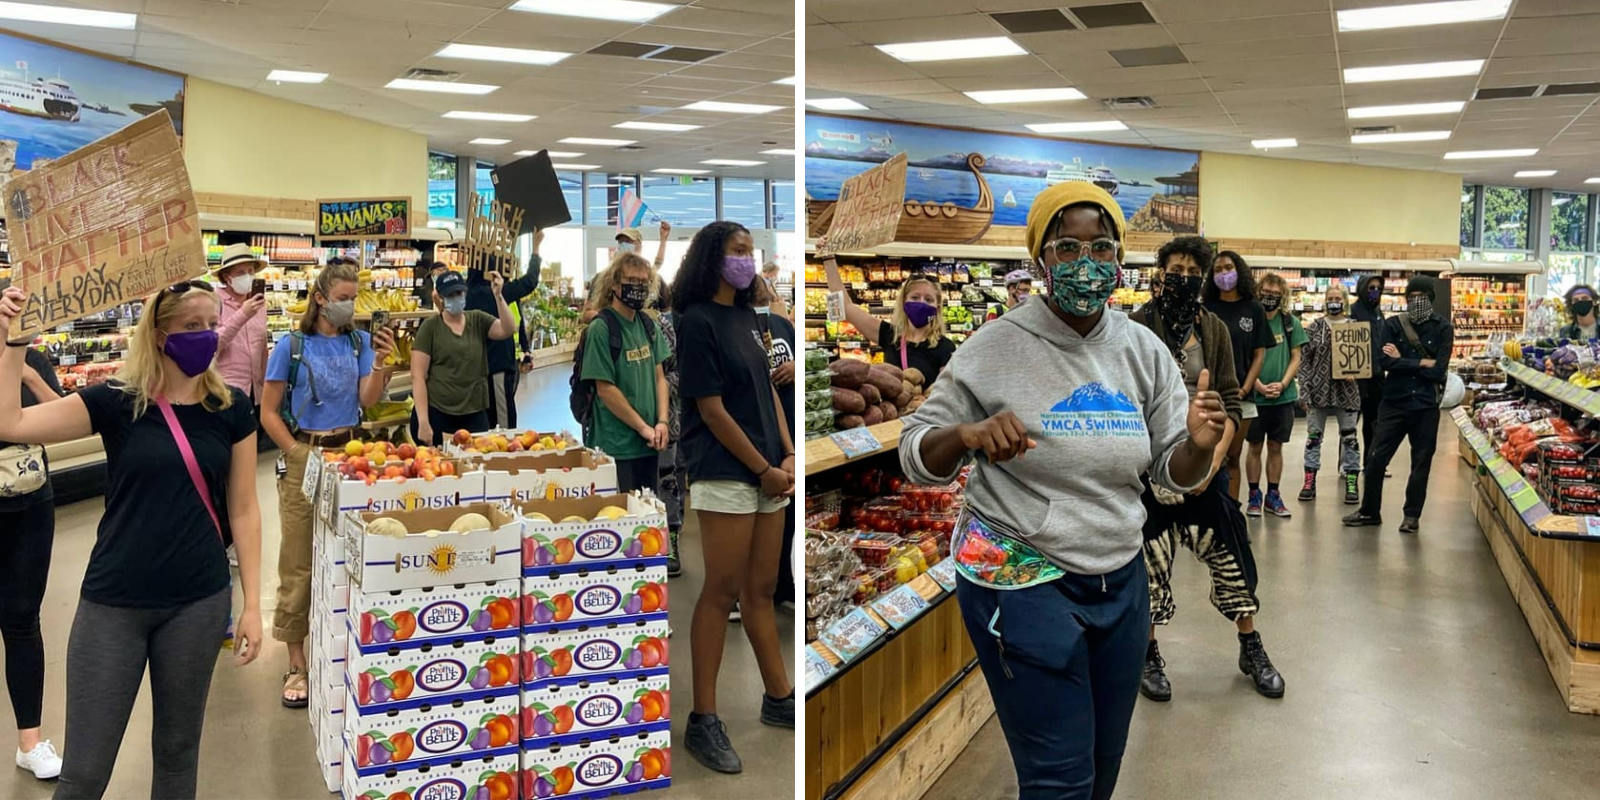 Seattle BLM takes over Trader Joe's, protesting 'lack of access to grocery stores'